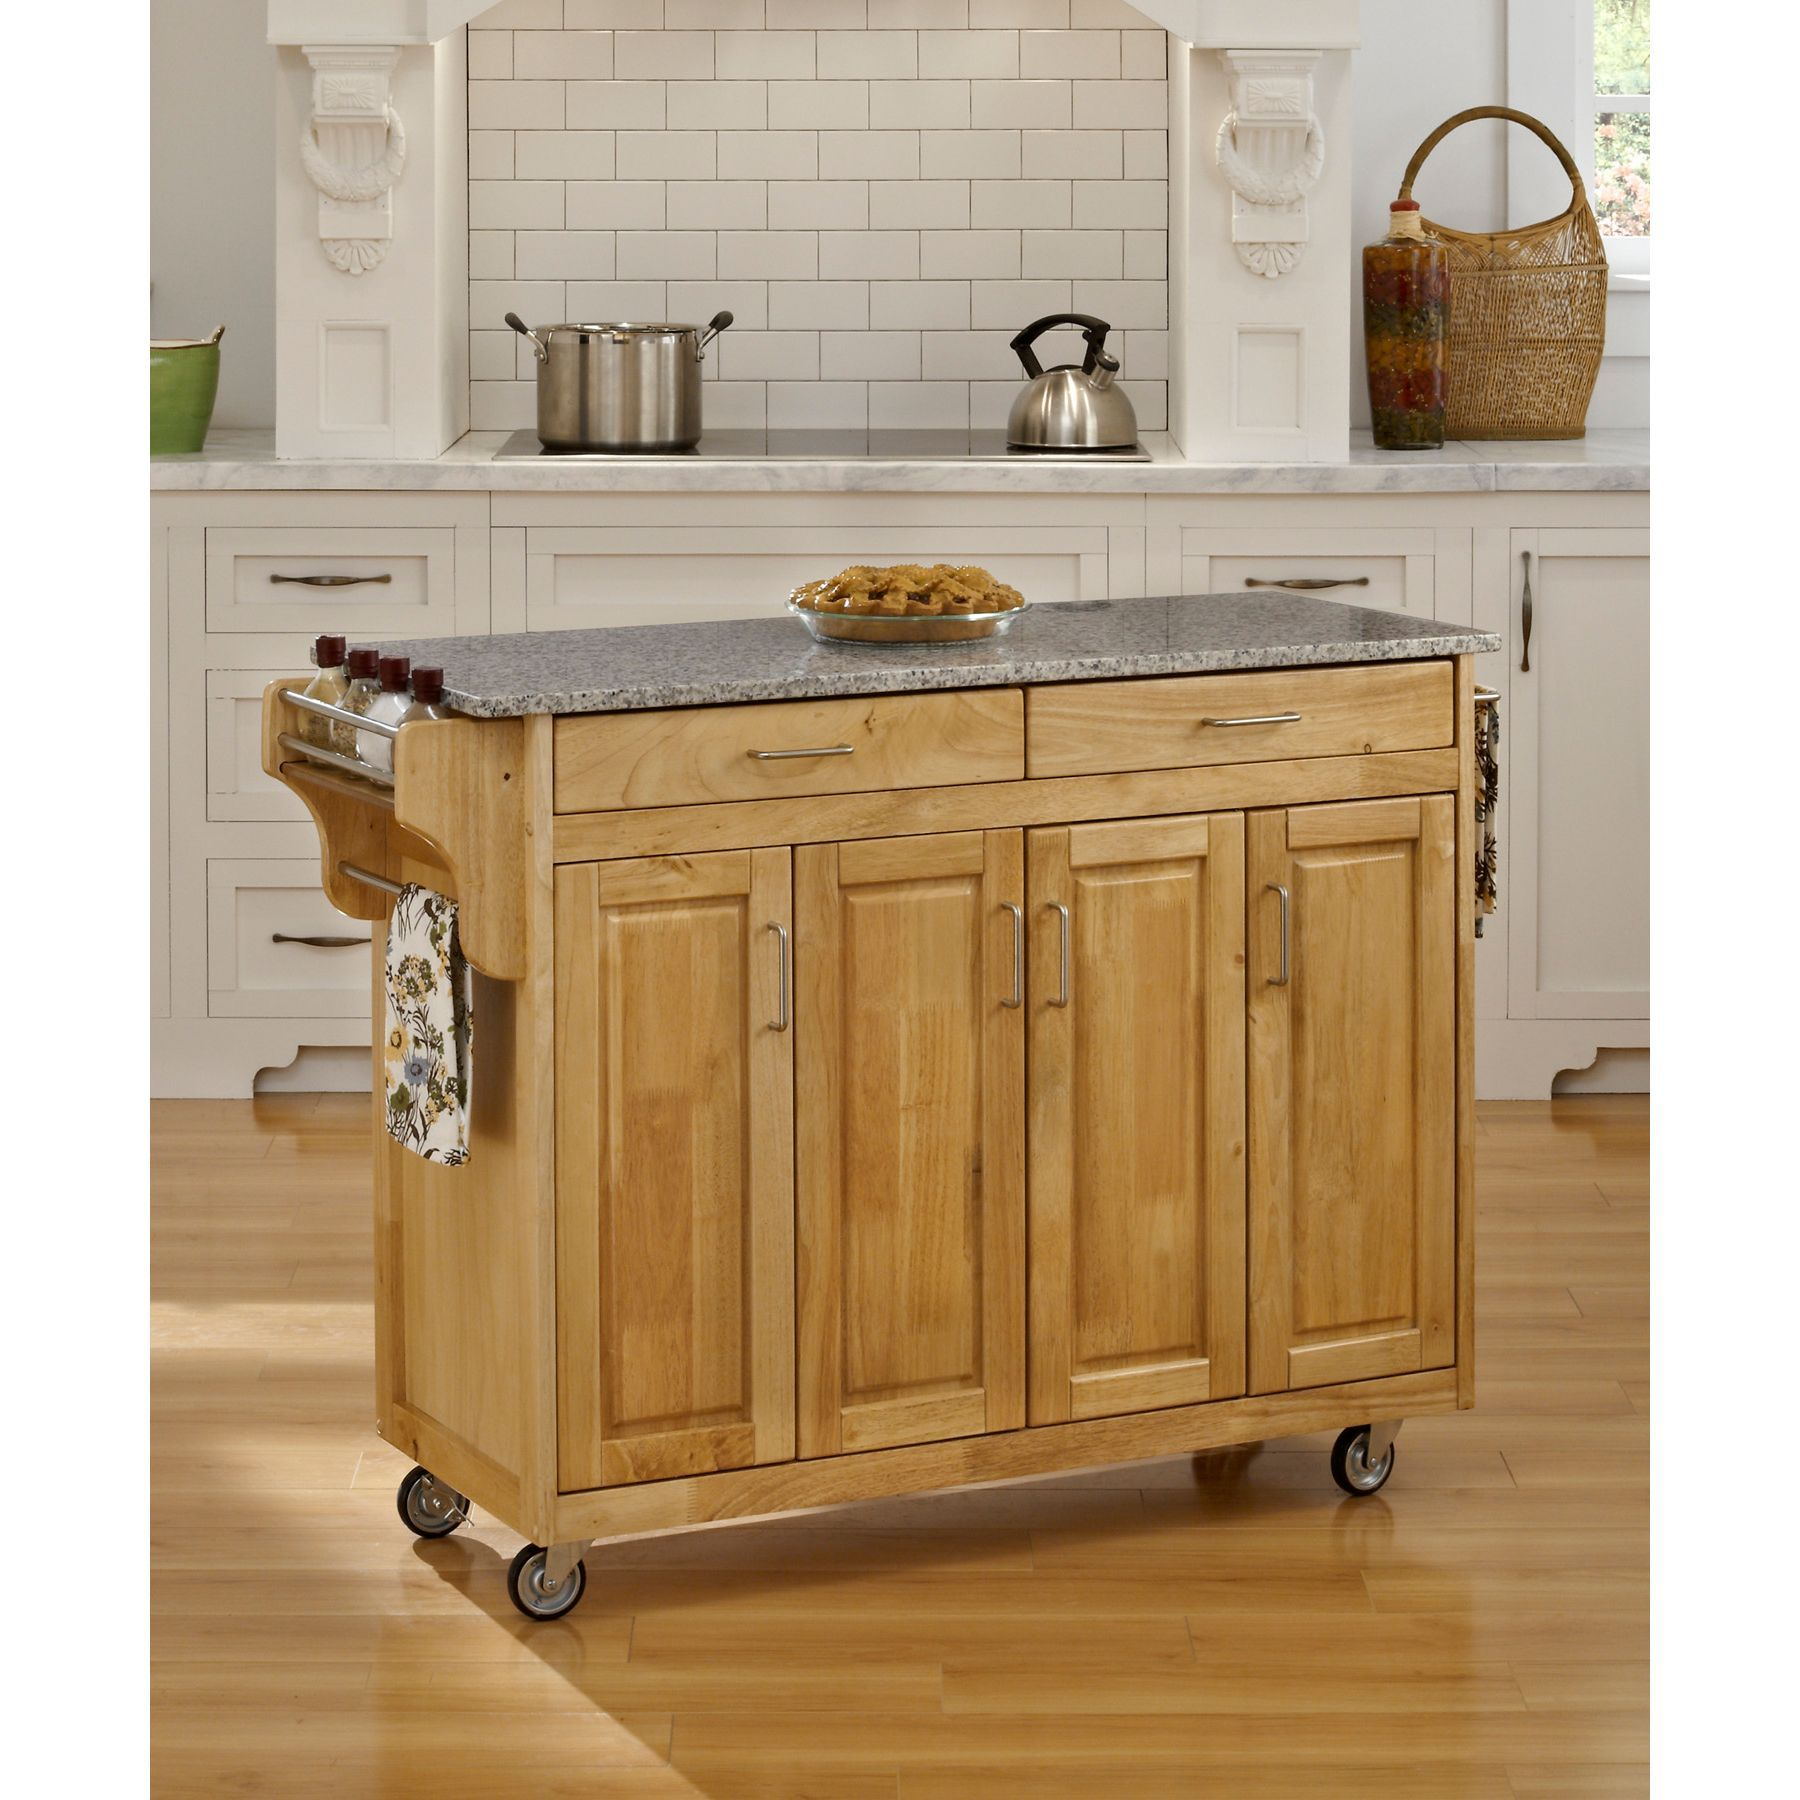 mobile bar rolling center iii seating storage size fabulous sale inspirations long trolley pictures carts of islands my cabinet projects wheels depot modern concept part kitchen best home cabinets and island portable casters woodworking on full small for movable breakfast with